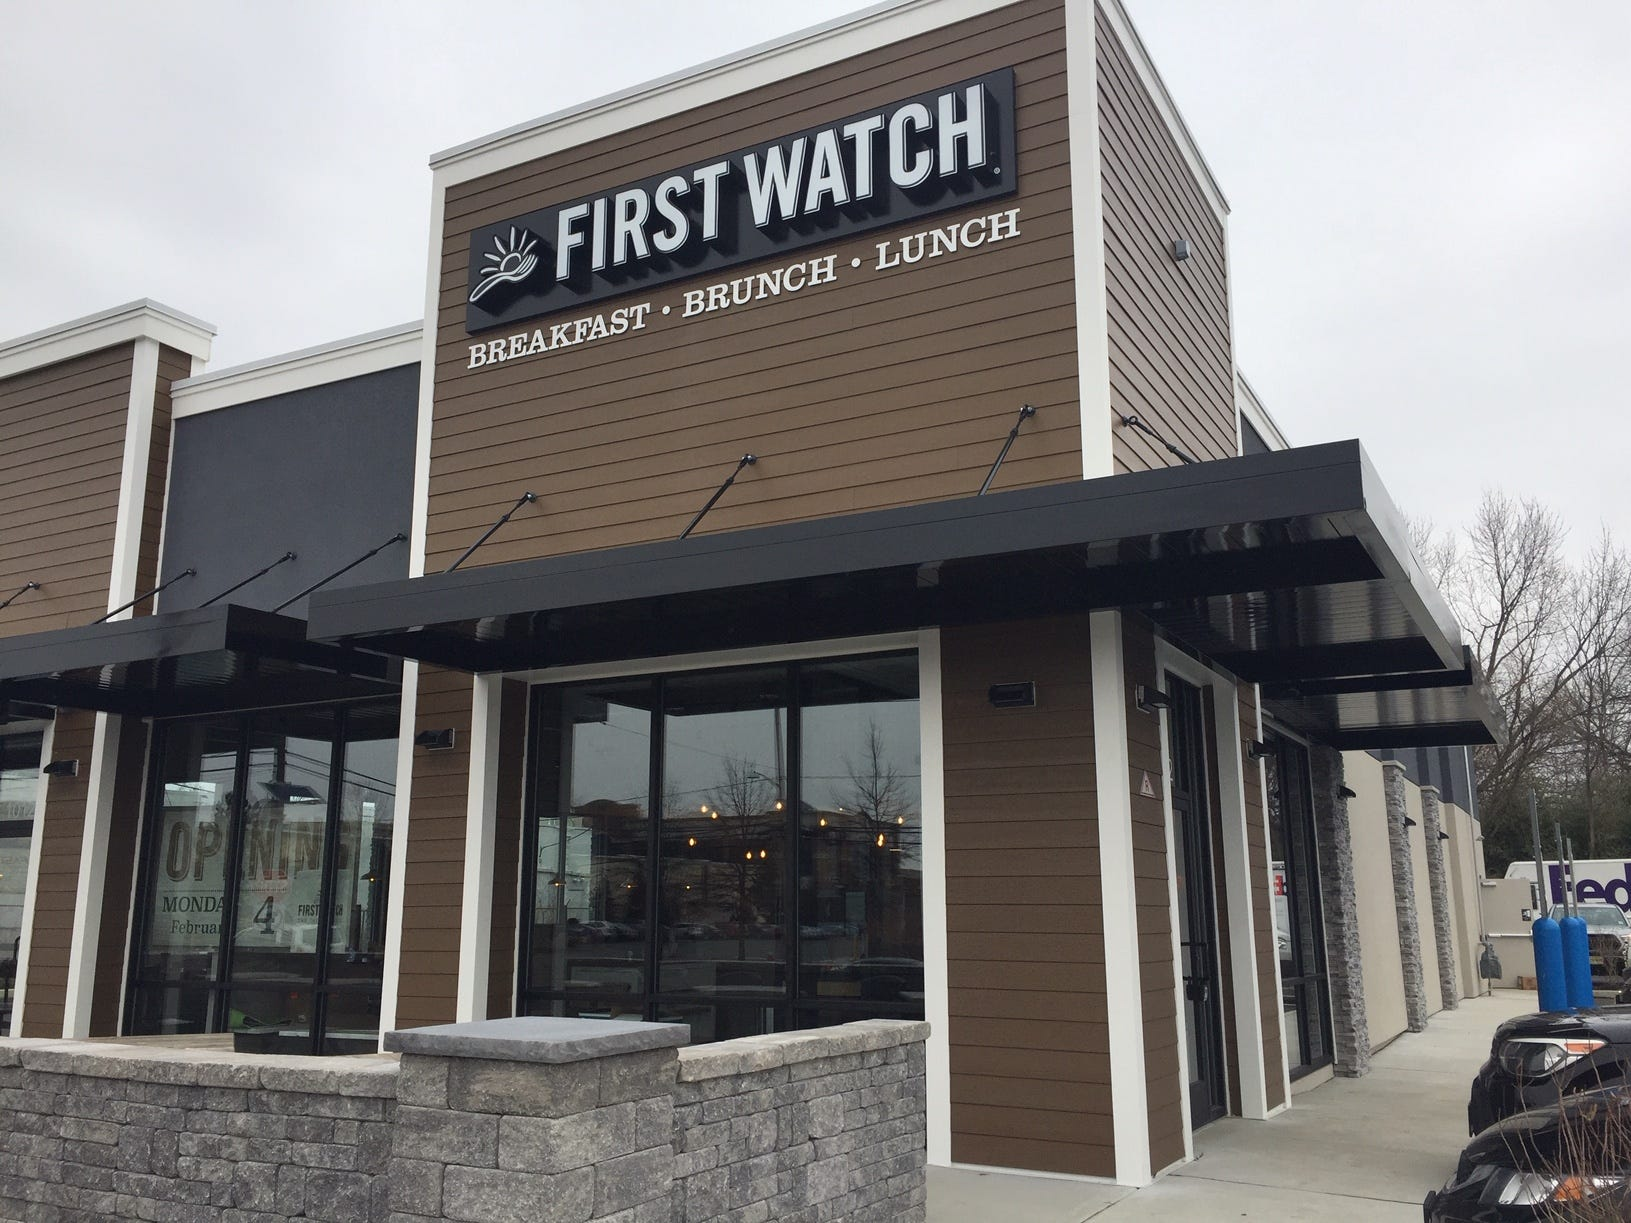 First Watch opens its first New Jersey location on Monday on Haddonfield Road in Cherry Hill. The restaurant chain has plans to open more locations soon in Marlton, Bridgewater, Woodbridge and Paramus.